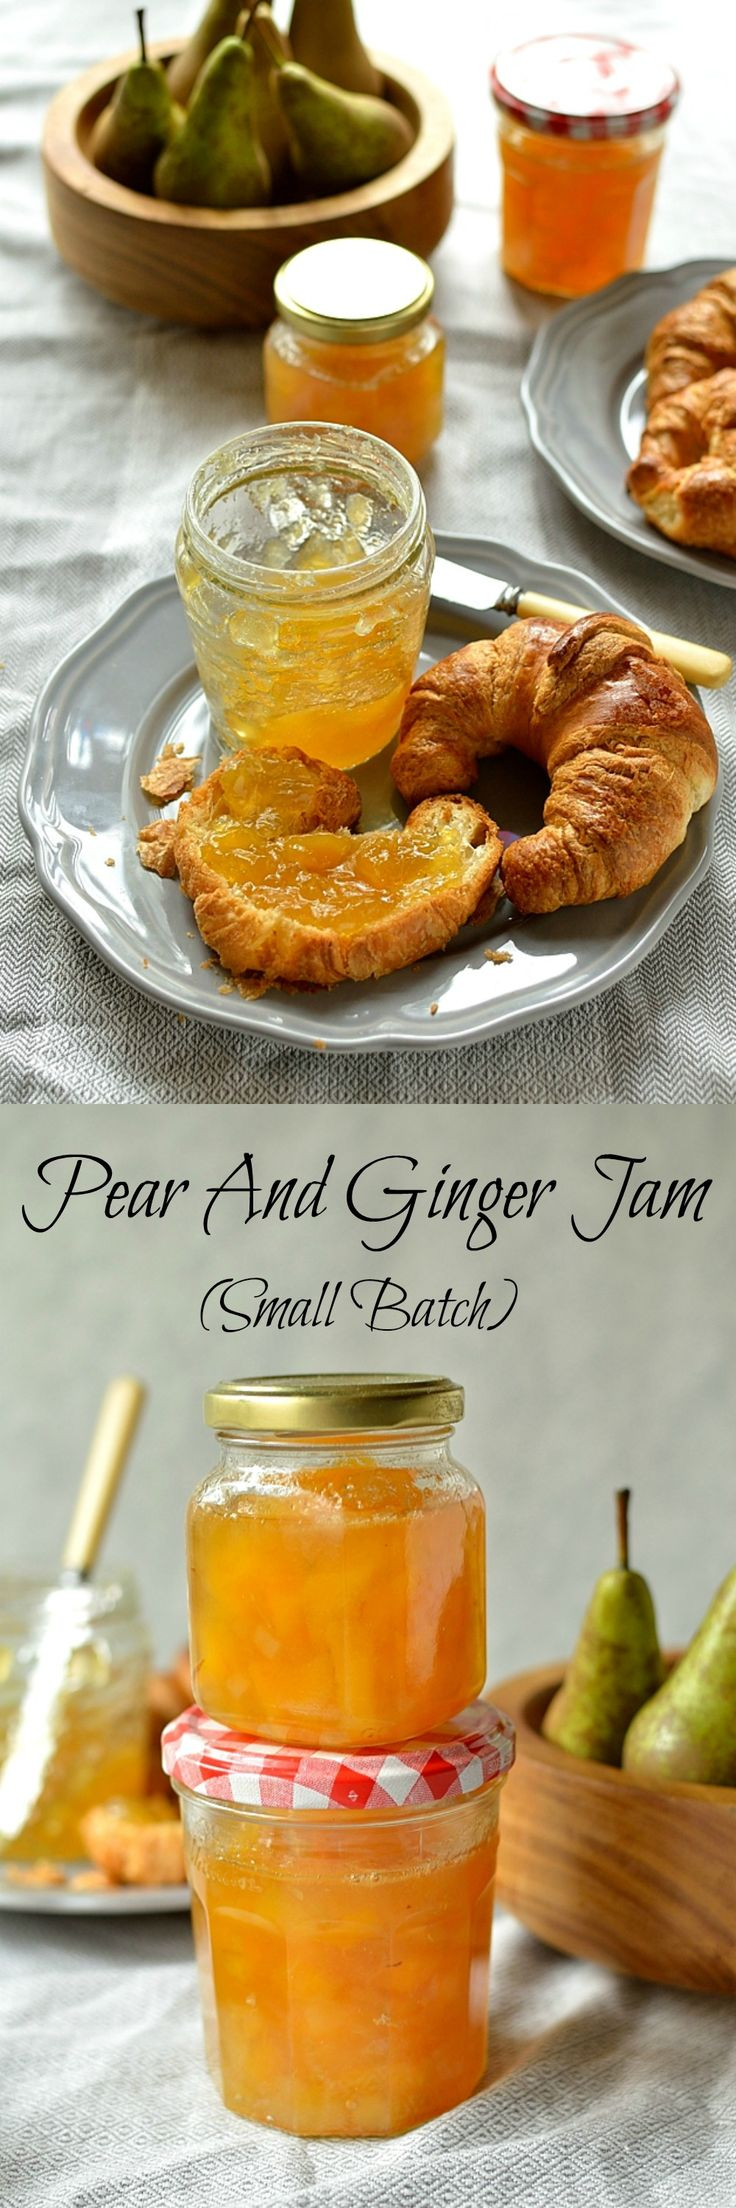 Pear and ginger jam - small batch, no added pectin. A lovely gift to give for Christmas!